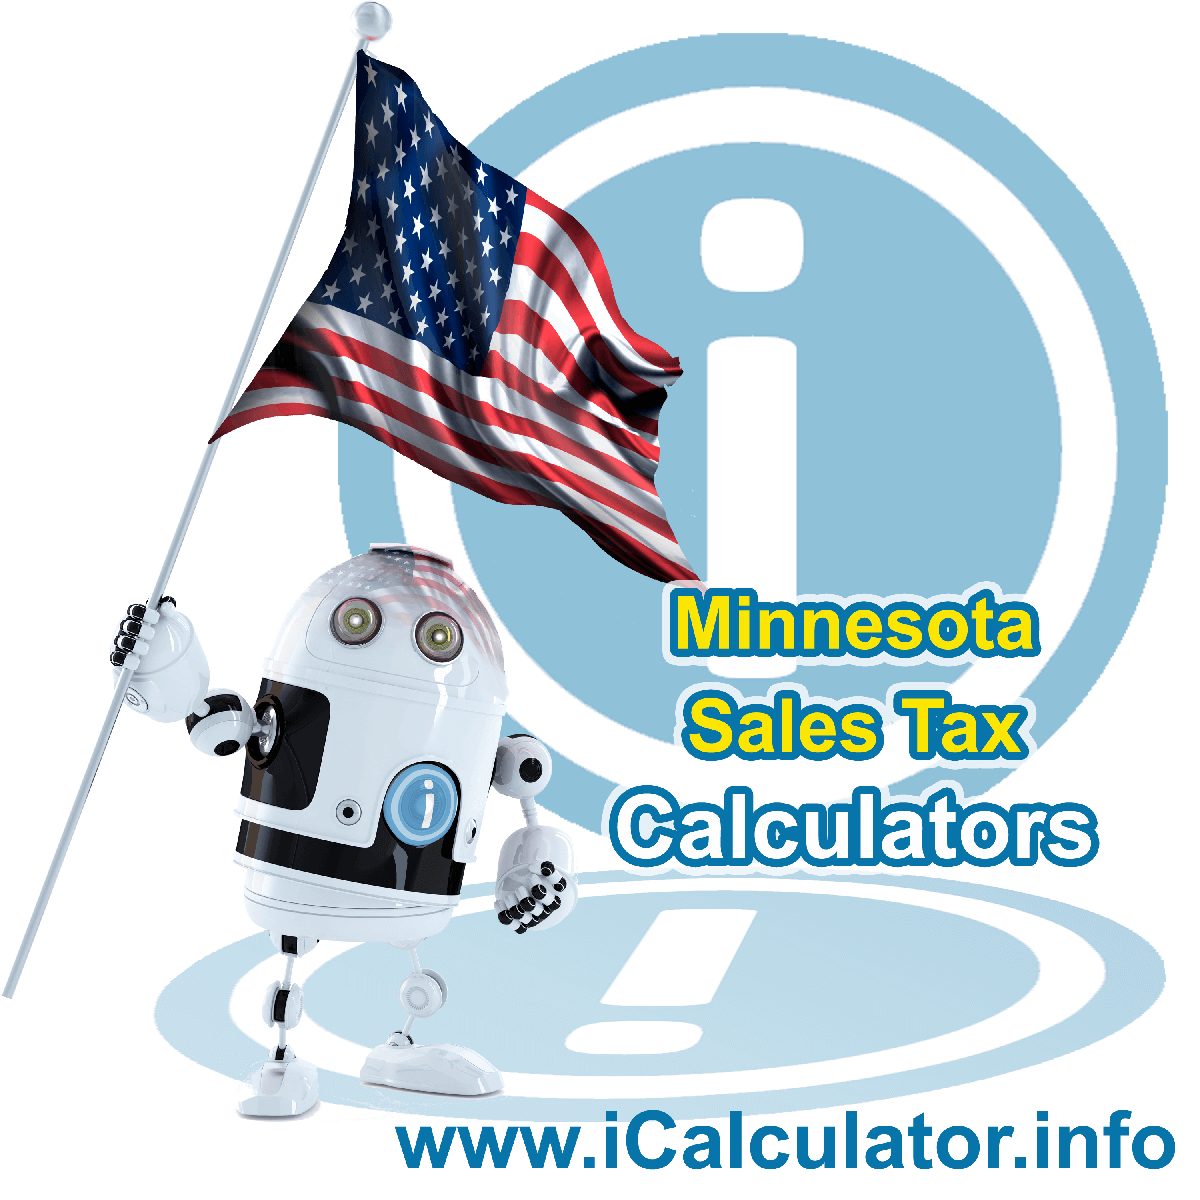 Minnesota Sales Tax Comparison Calculator: This image illustrates a calculator robot comparing sales tax in Minnesota manually using the Minnesota Sales Tax Formula. You can use this information to compare Sales Tax manually or use the Minnesota Sales Tax Comparison Calculator to calculate and compare Minnesota sales tax online.